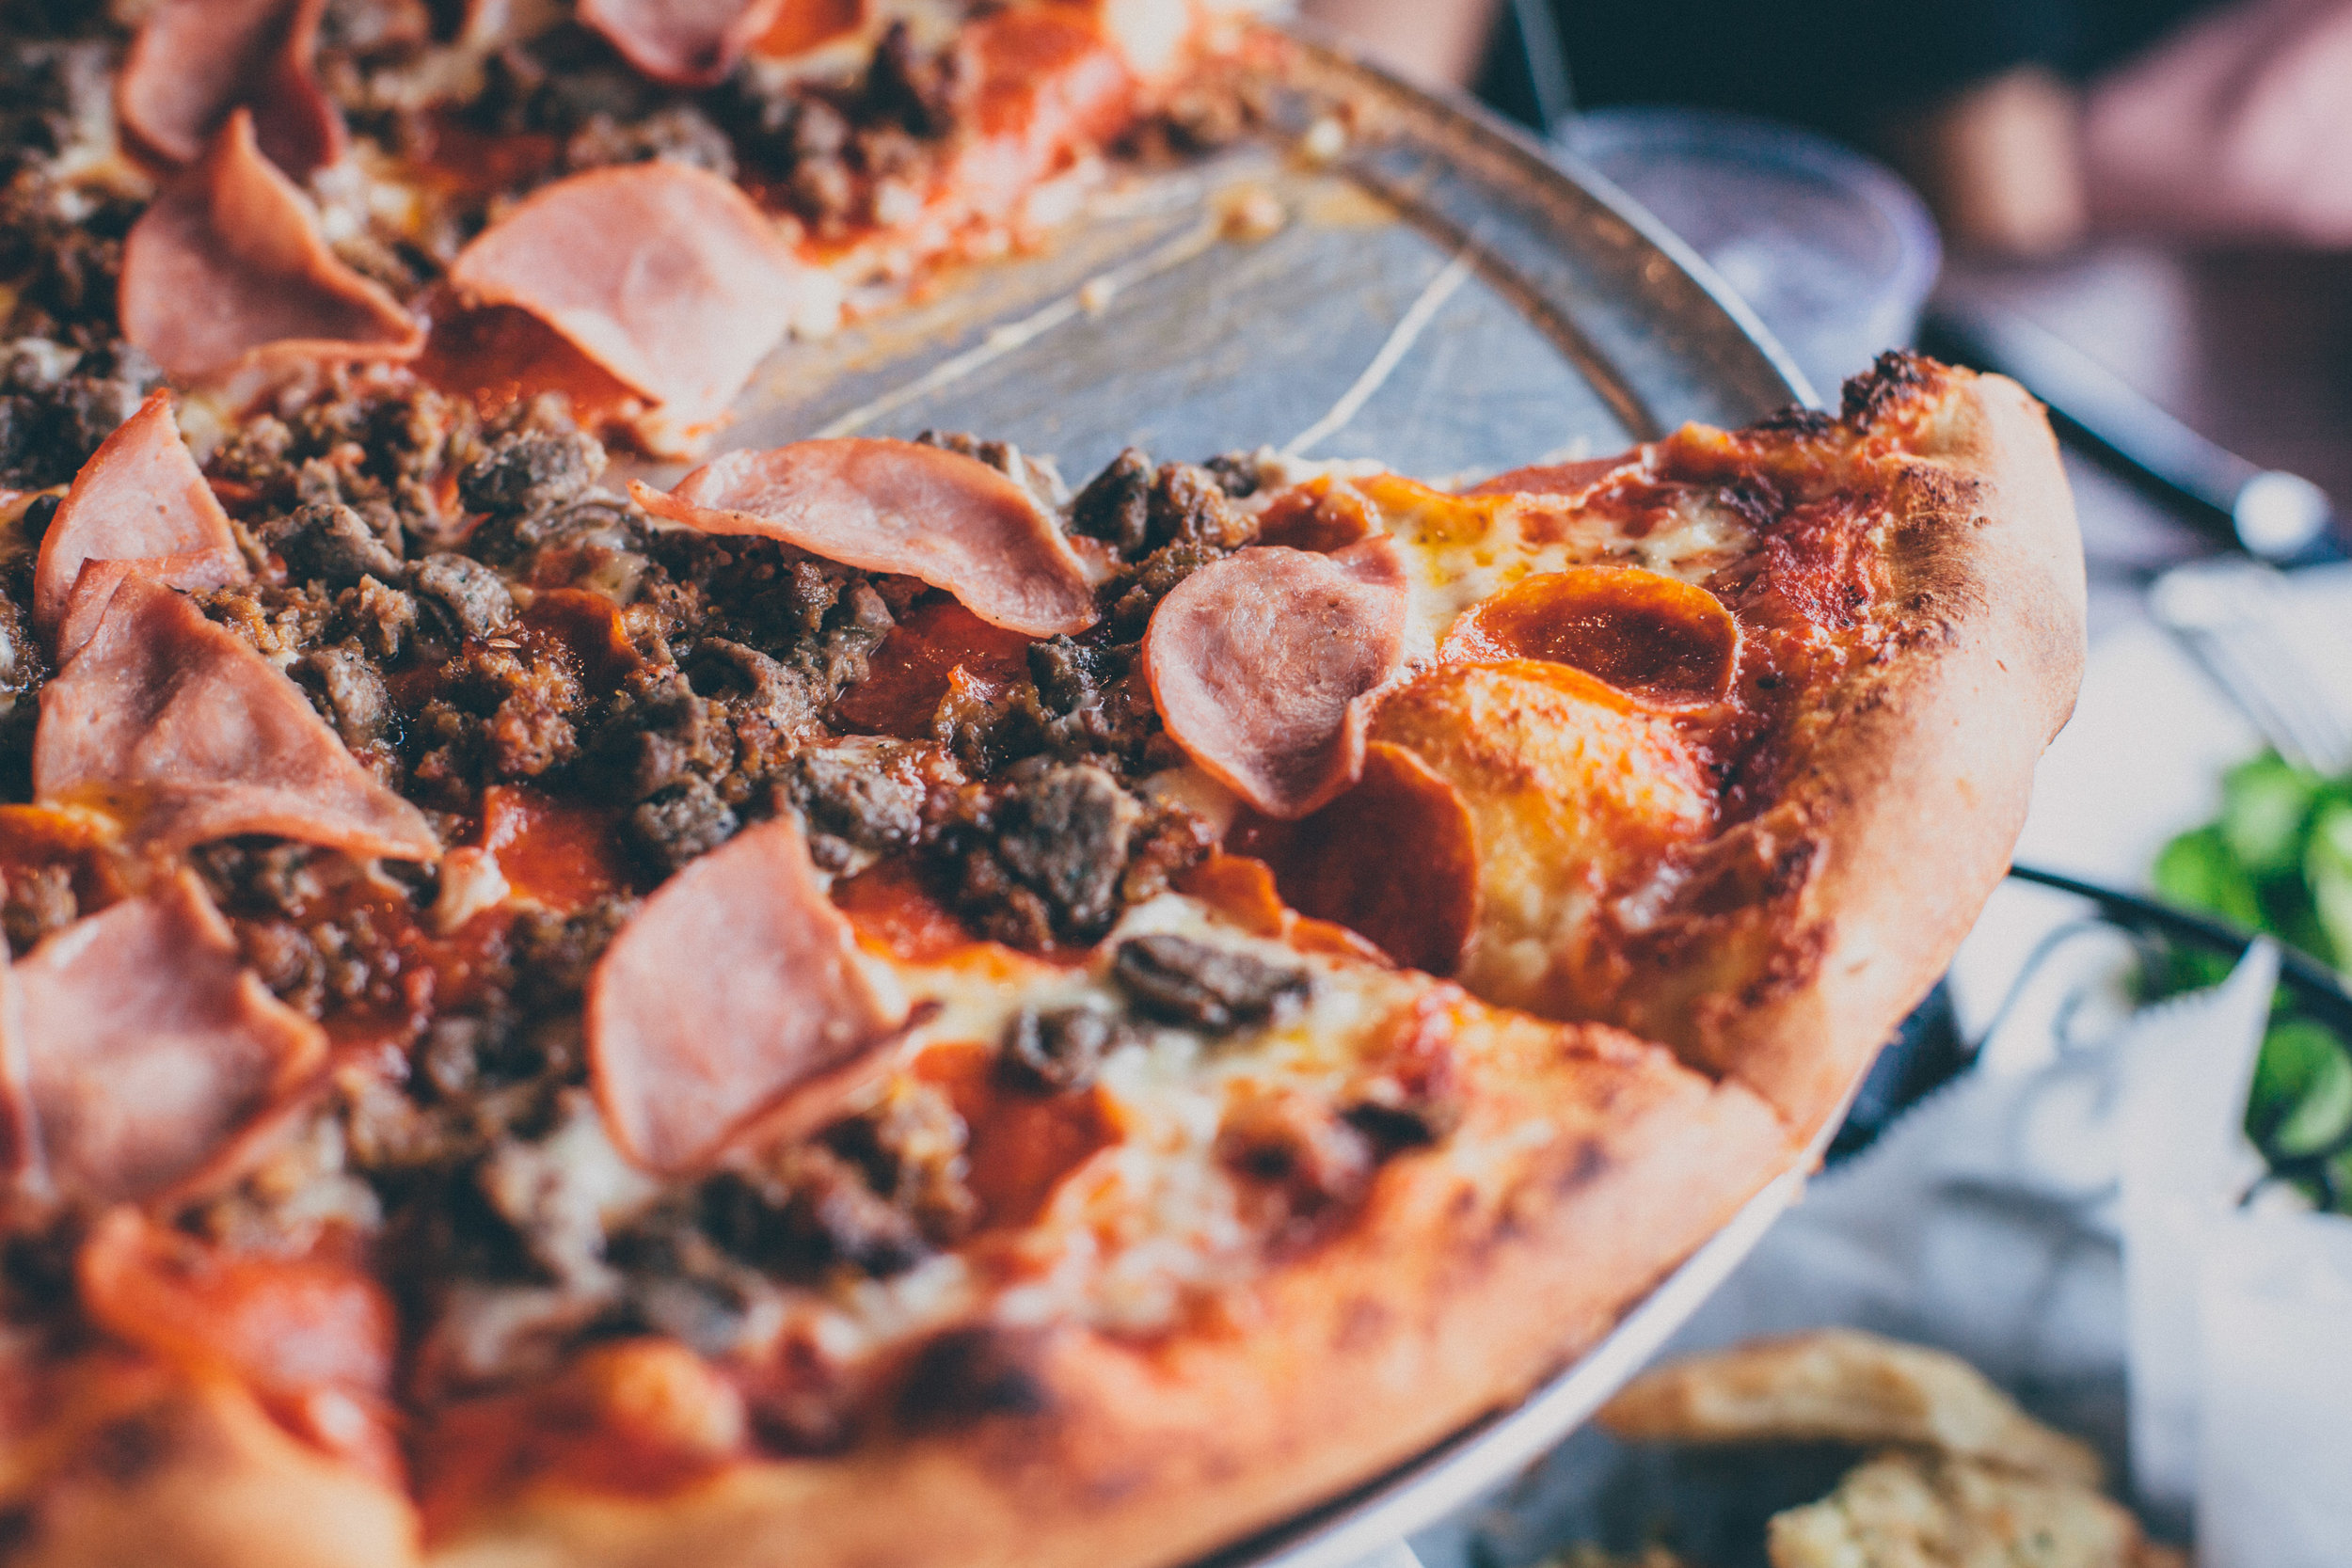 Mulberry Pizza:Crumbled spicy Italian sausage, pepperoni, Canadian bacon, beef, and all-natural mozzarella cheese, with our homemade pizza sauce